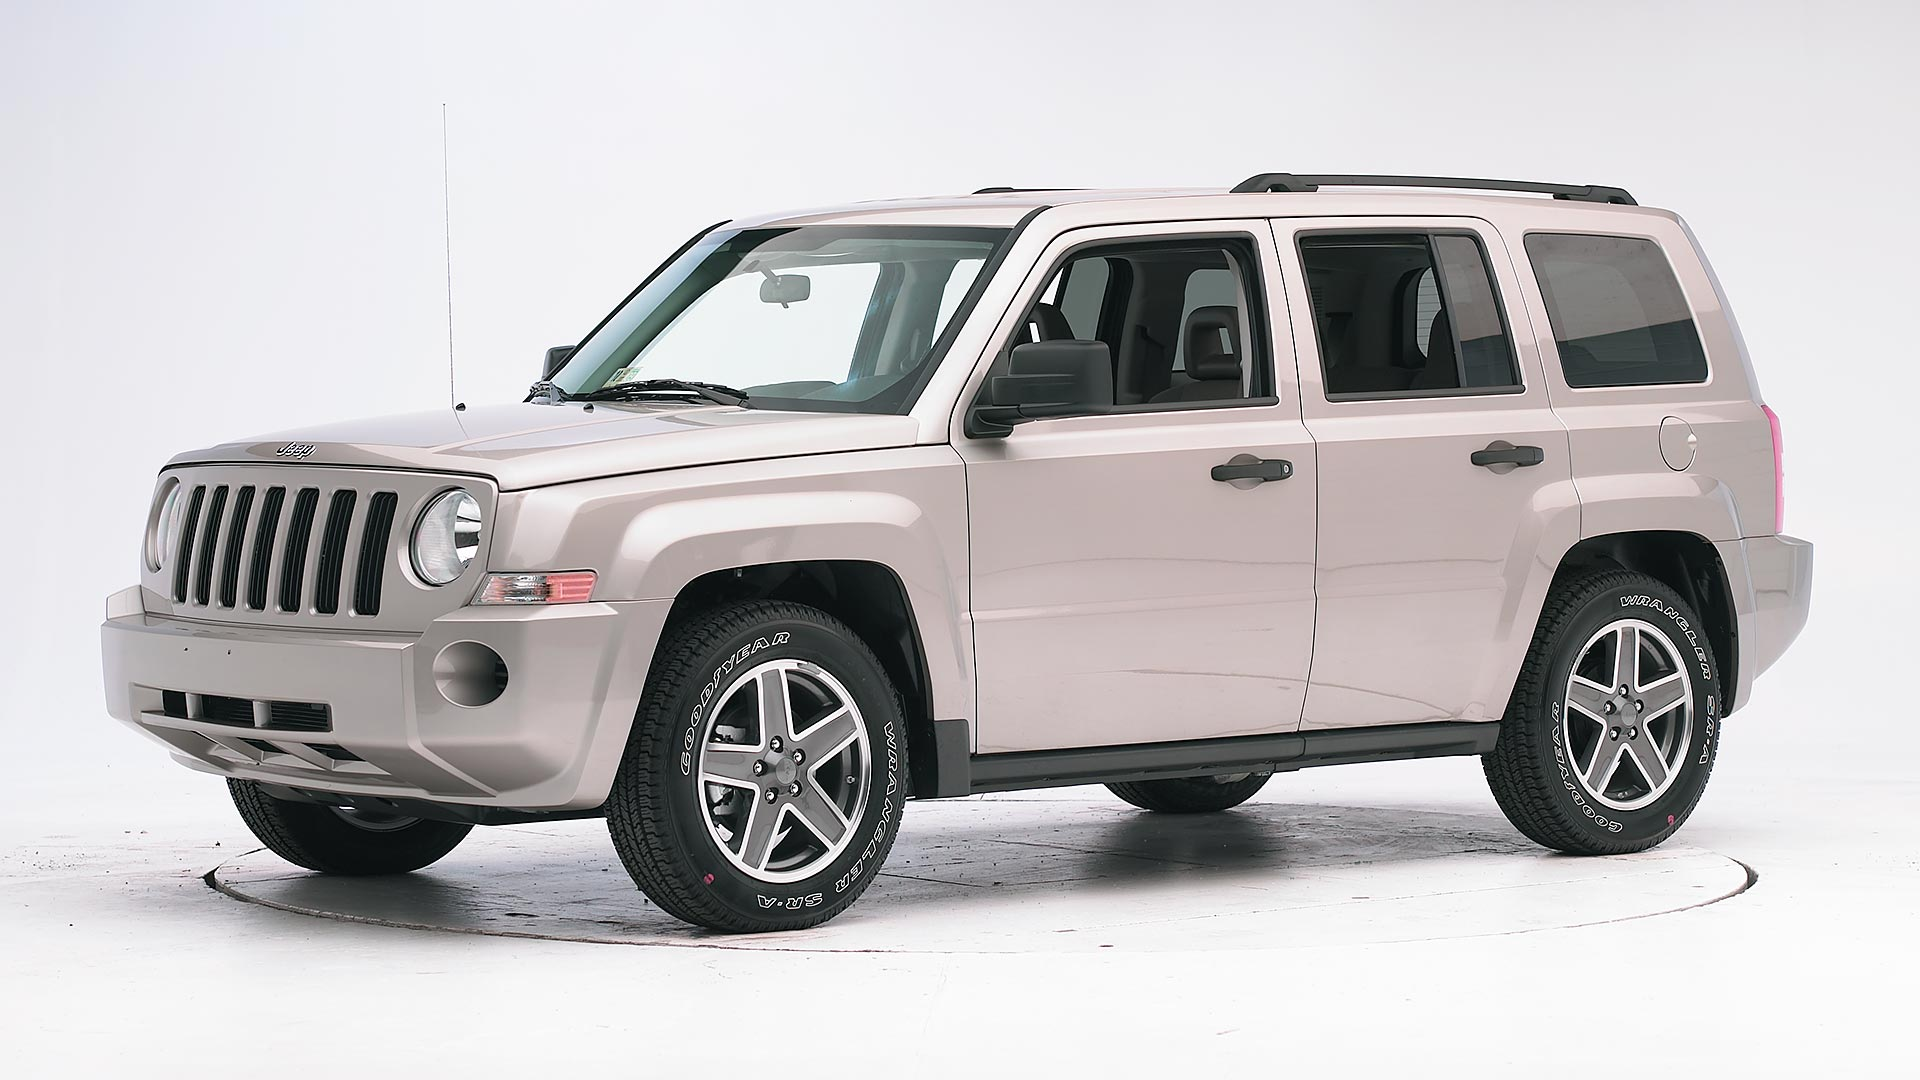 2009 Jeep Patriot 4-door SUV